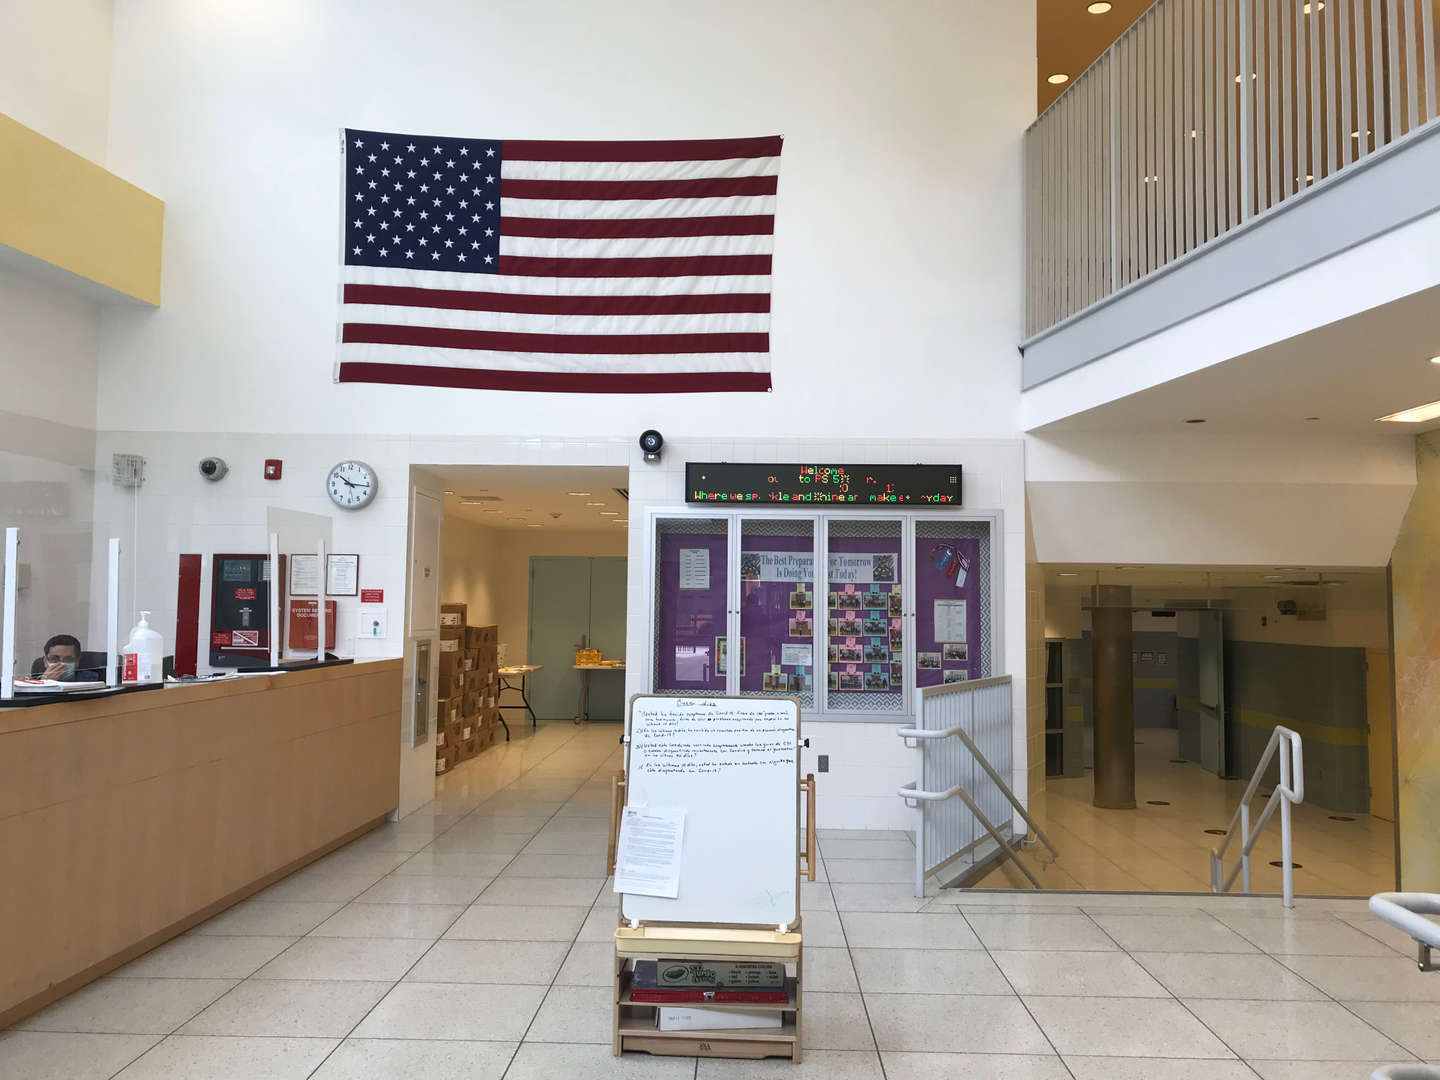 Security lobby displaying a large U.S. flag on the wall above.